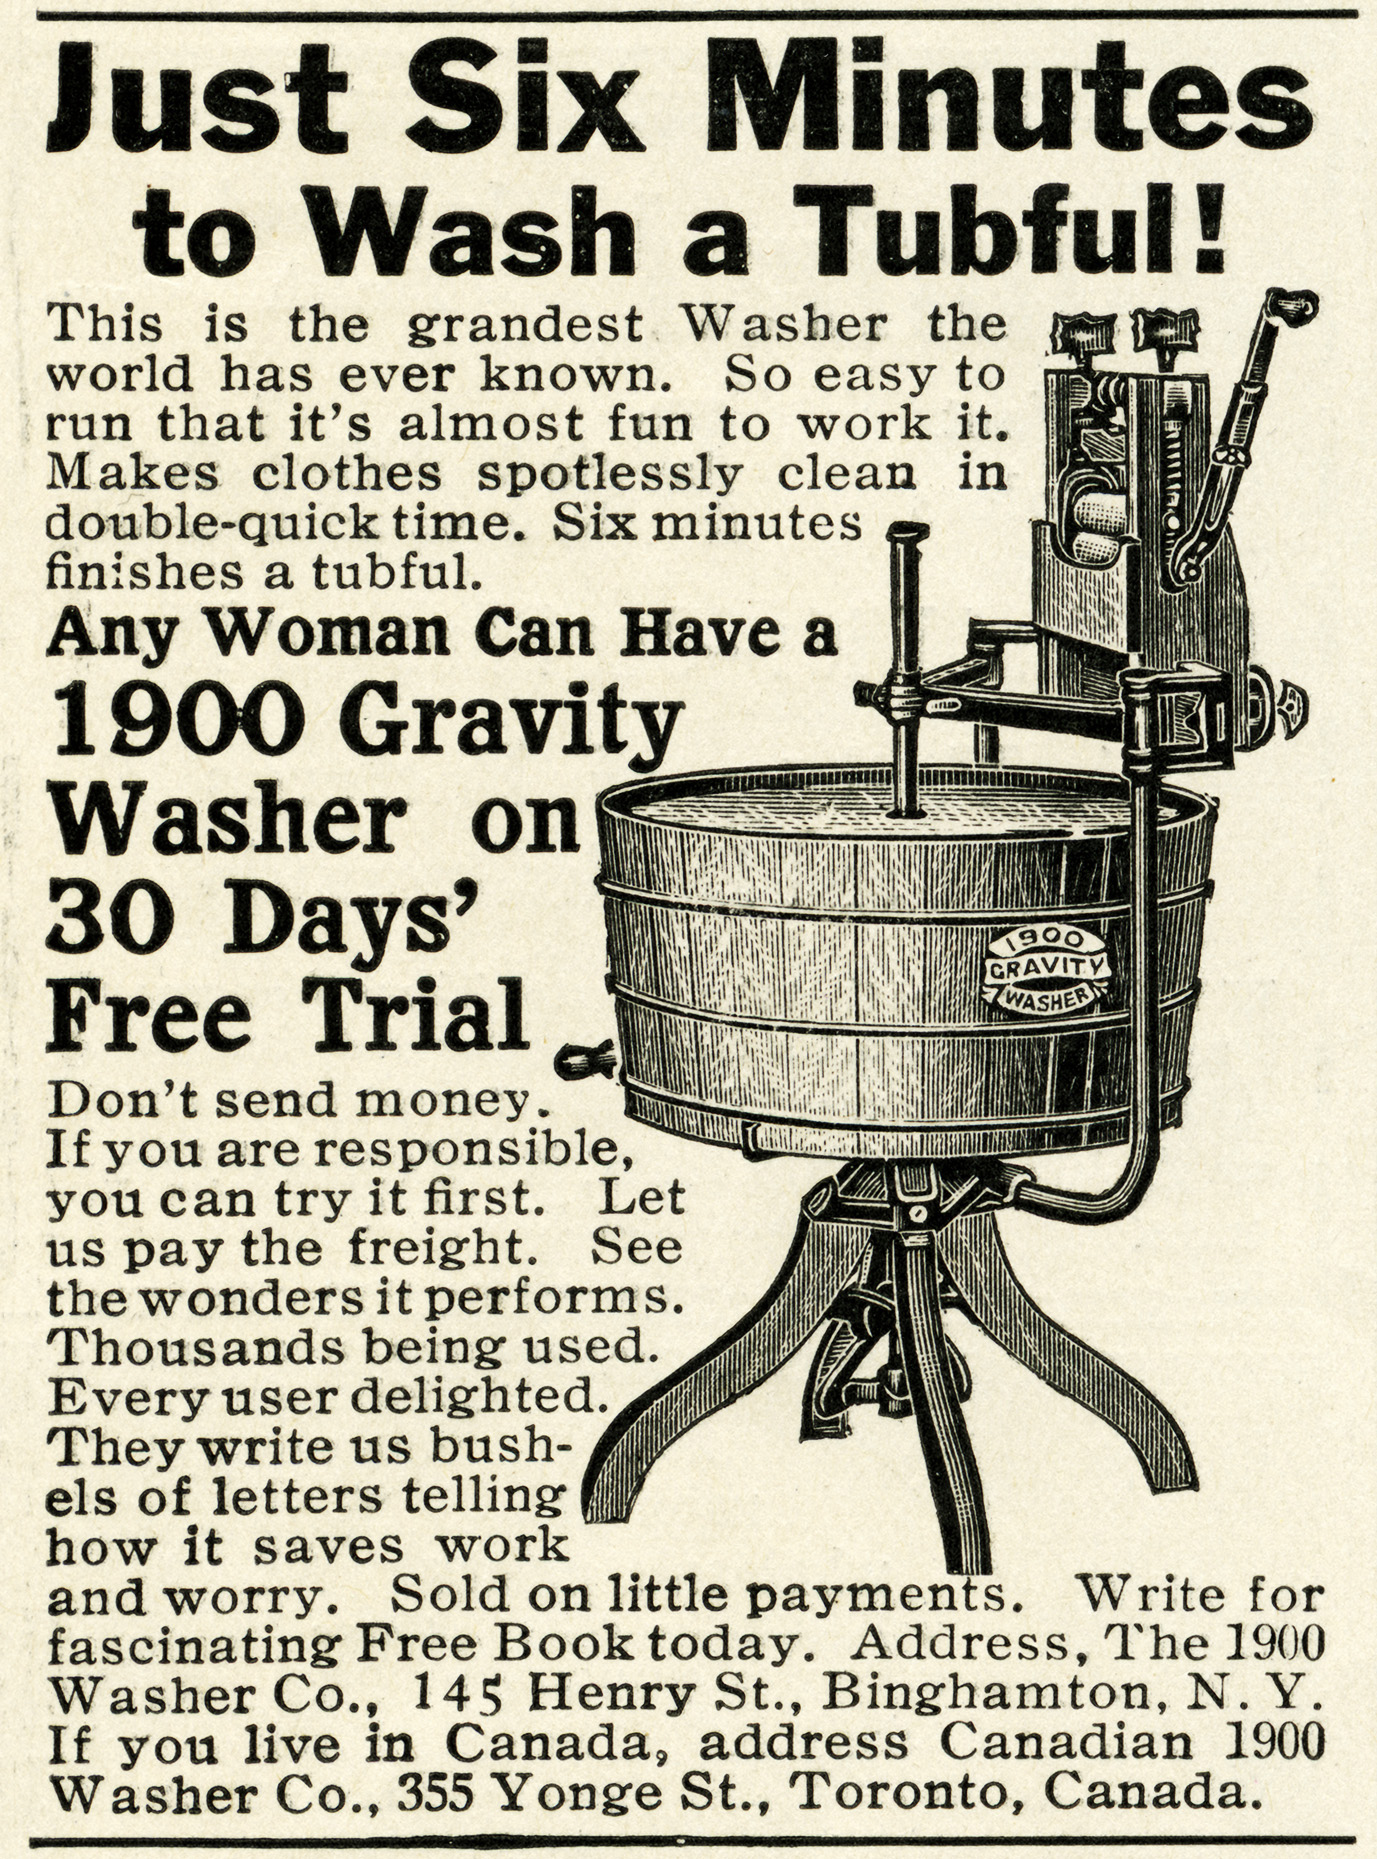 Free Vintage Washing Machine Magazine Advertisement Digital Image